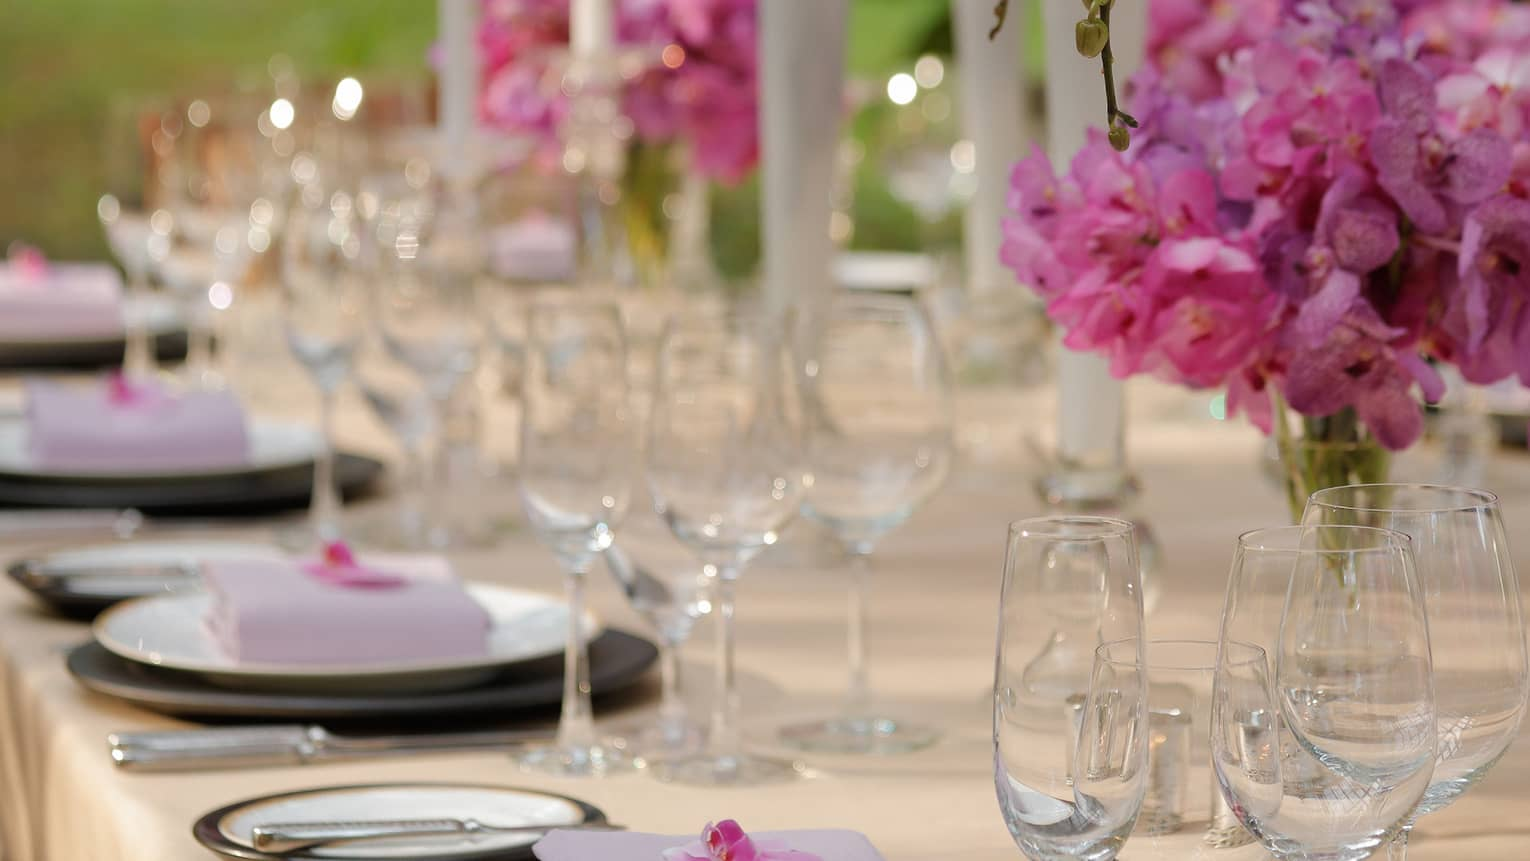 Outdoor dining table with pink flowers in vases, tall white candles